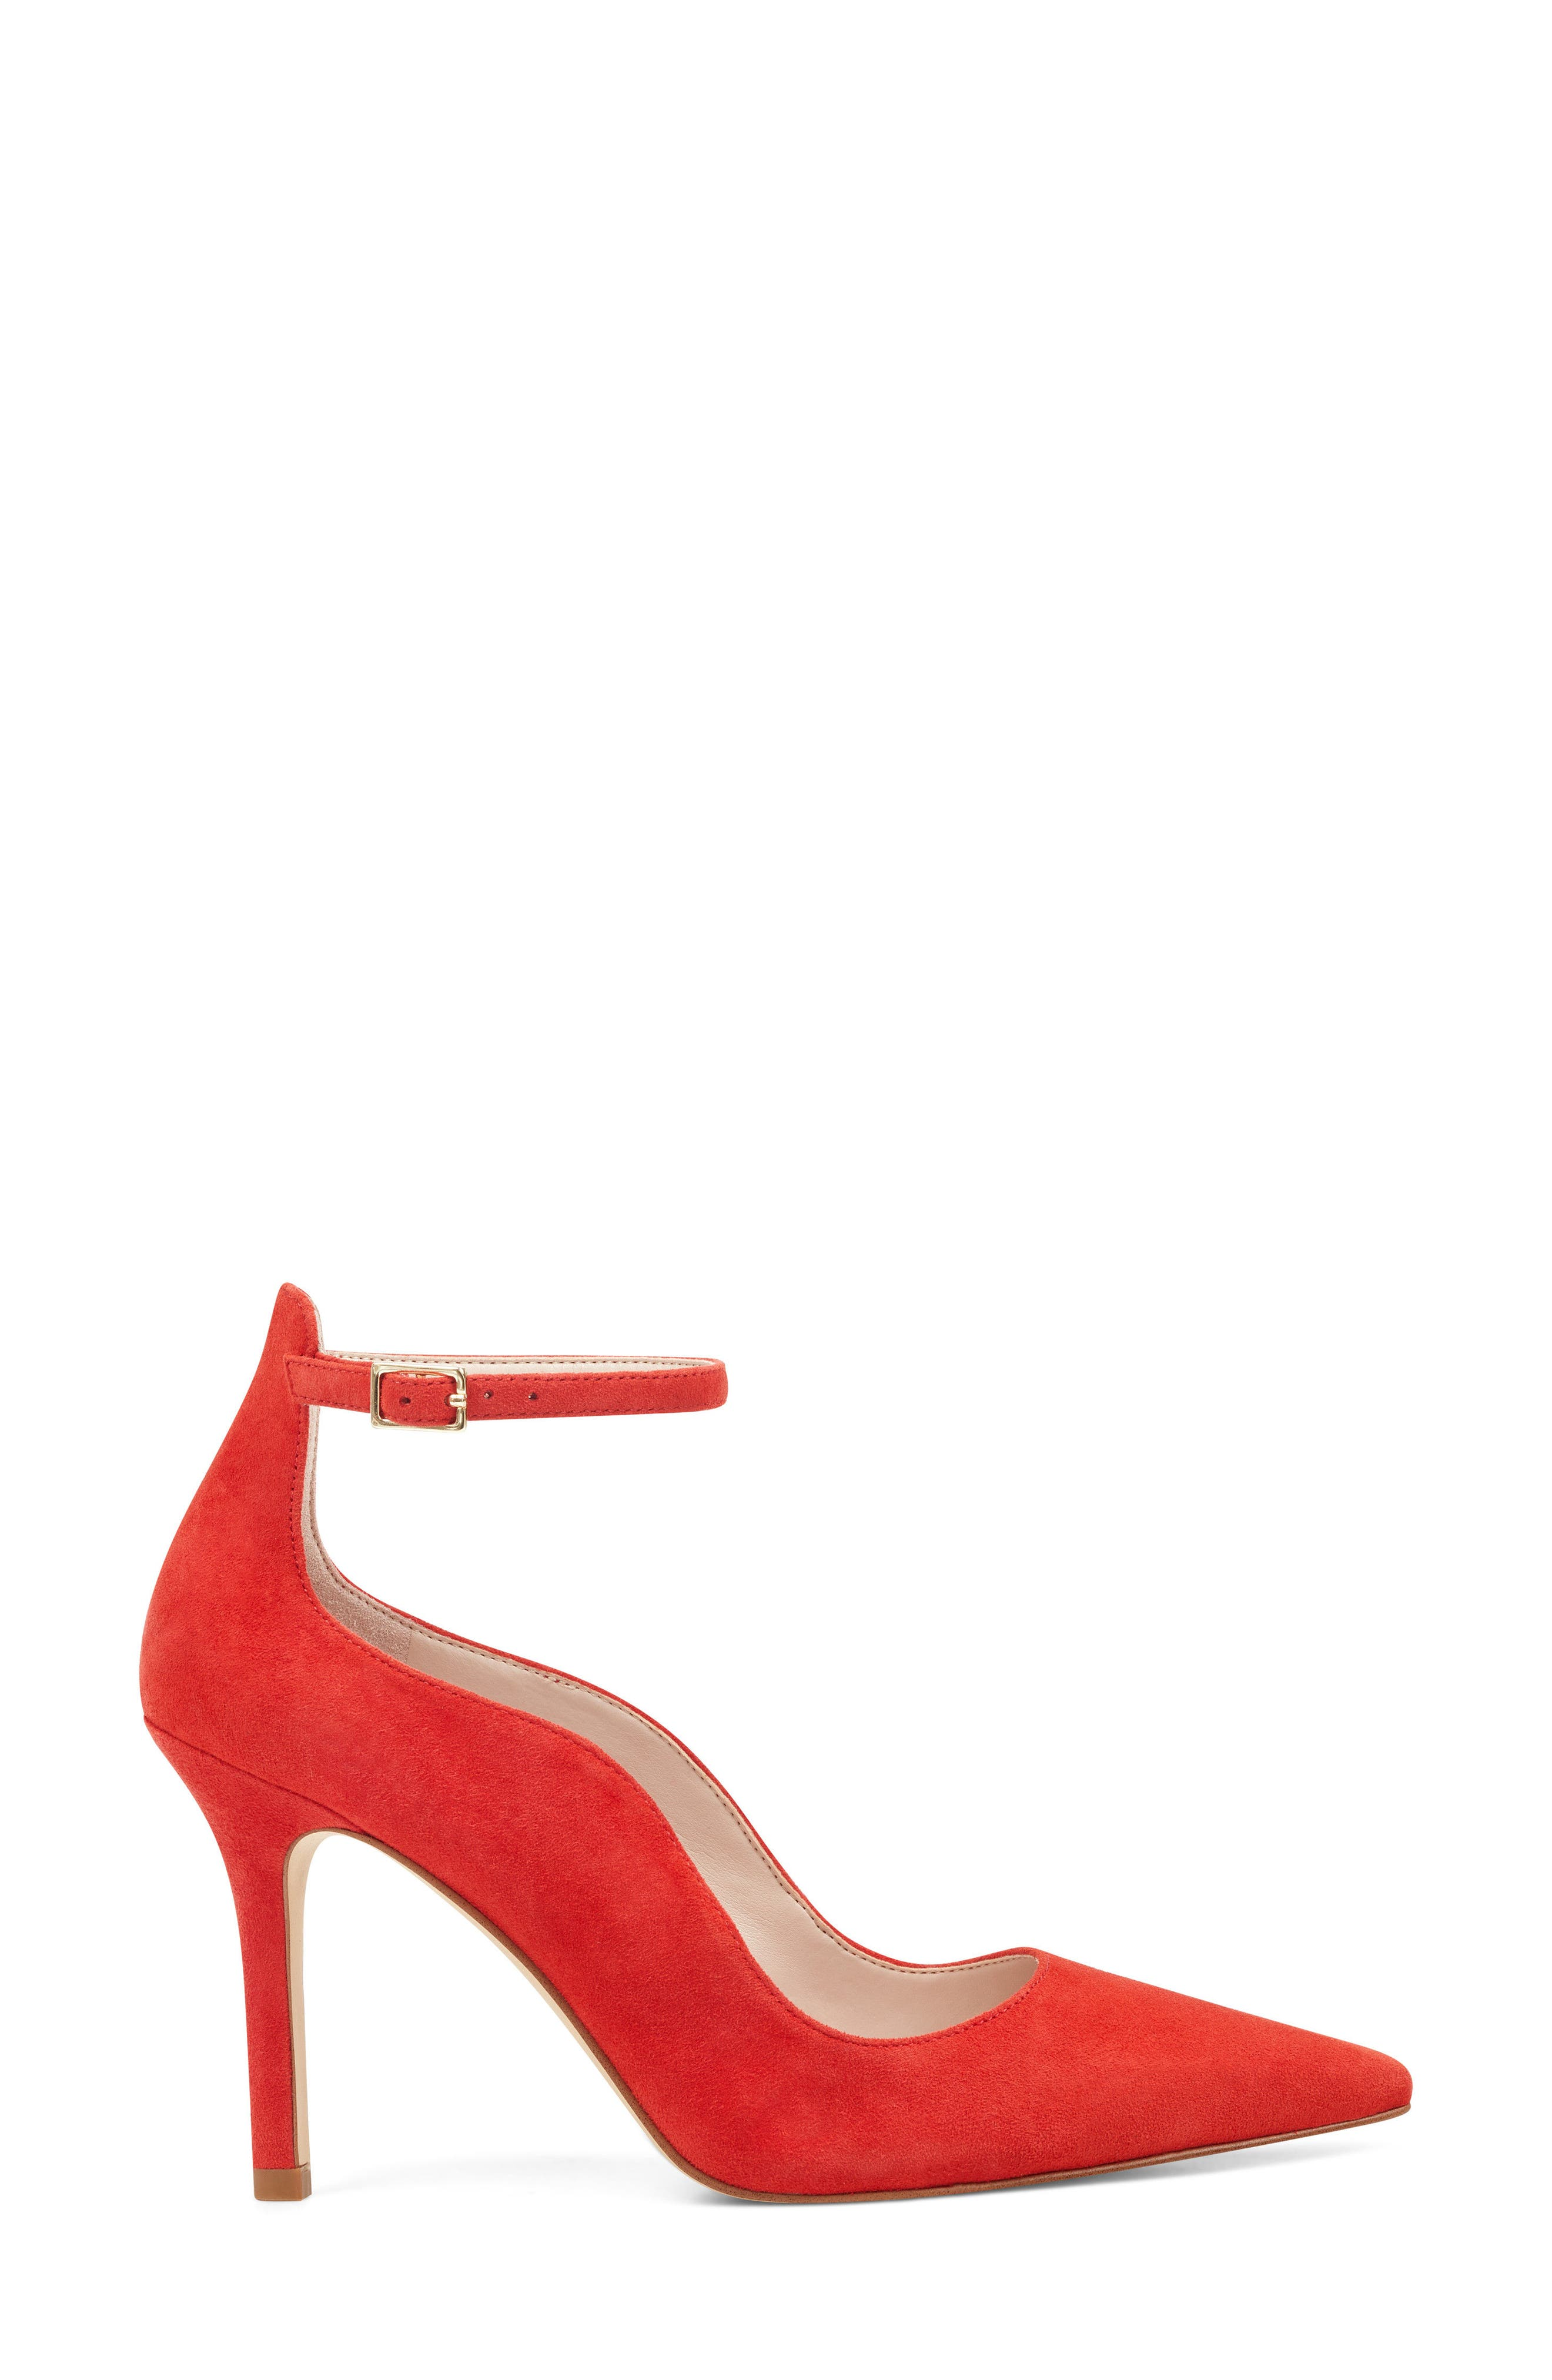 Marquisha Scalloped Ankle Strap Pump,                             Alternate thumbnail 3, color,                             Red Suede